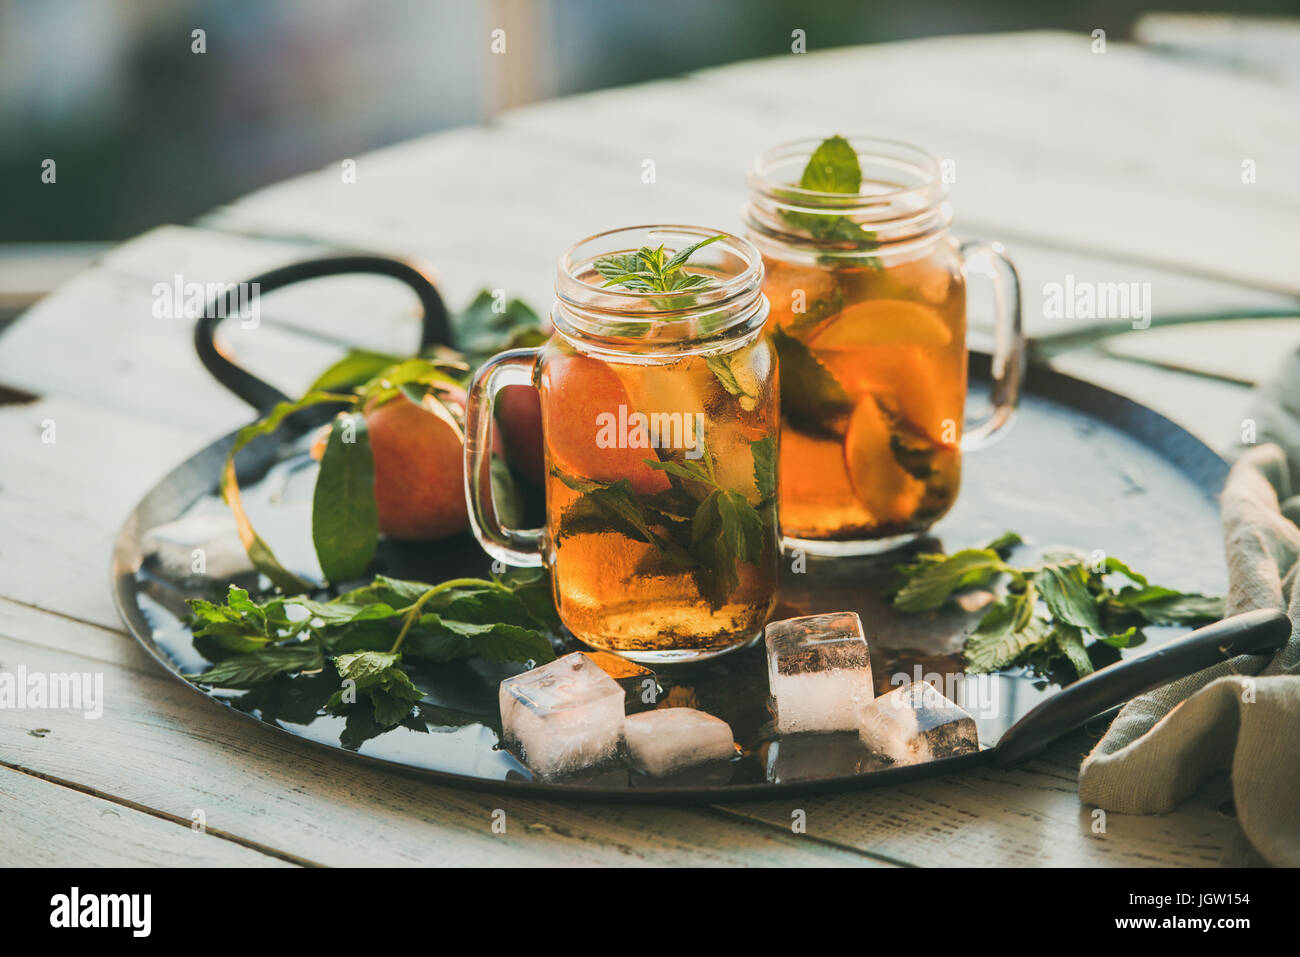 Summer refreshing cold peach ice tea on wooden table - Stock Image